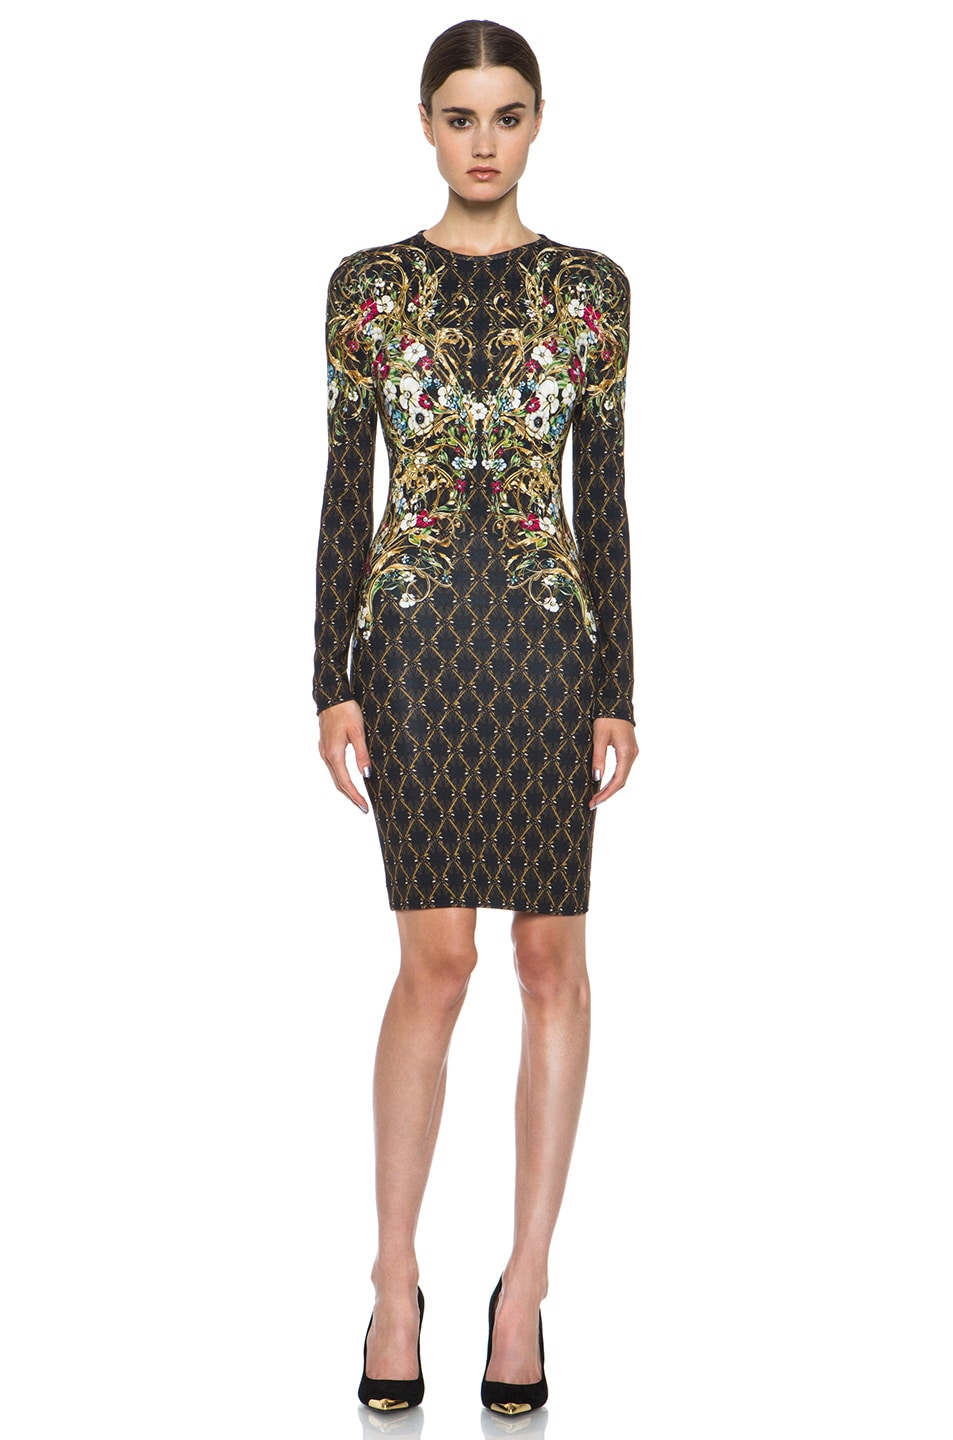 Black and gold print dress